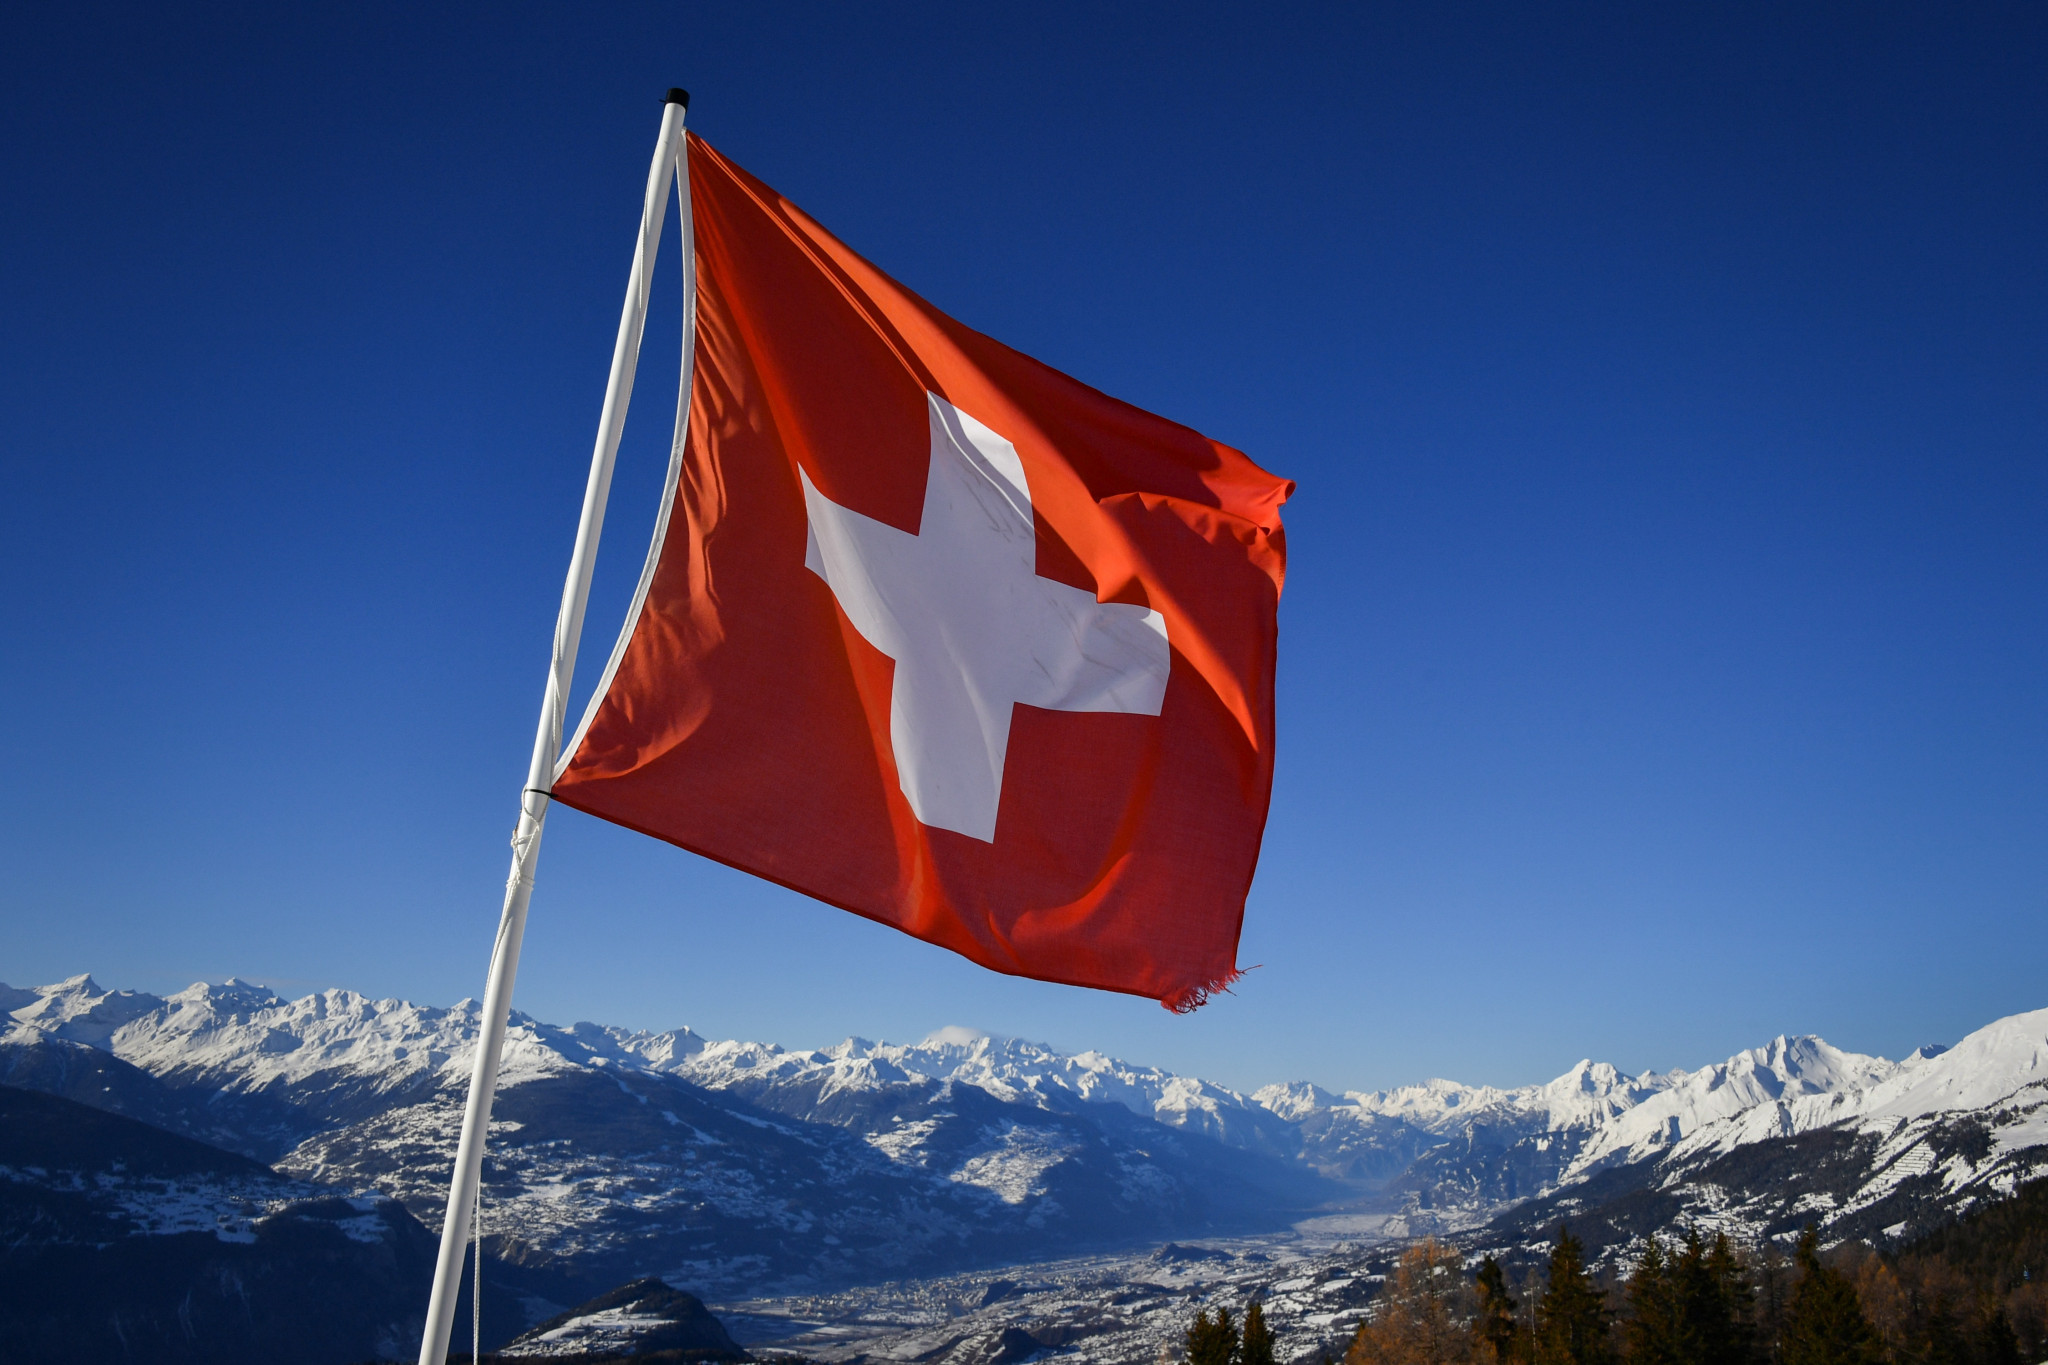 Swiss Olympic welcomes proposals to give sport financial assistance through 2021